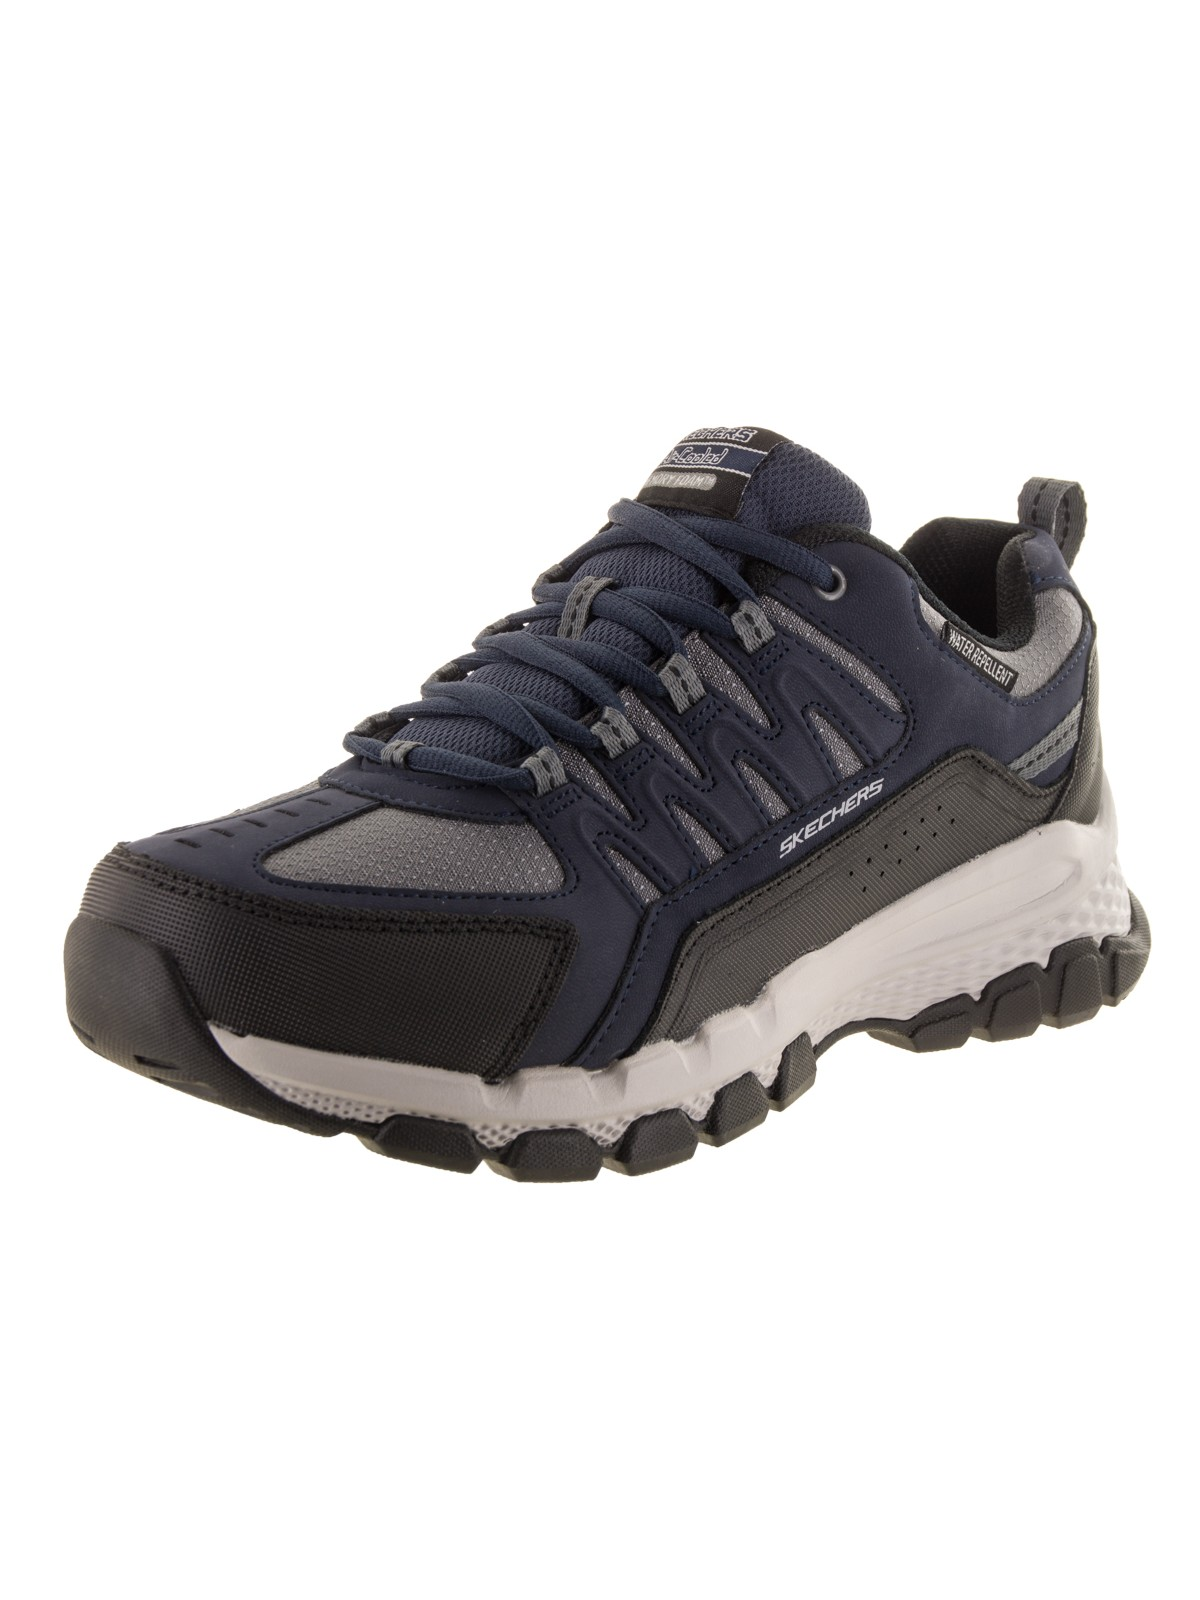 Skechers Men's Outland 2.0 - Rip Staver - Wide Hiking Shoe